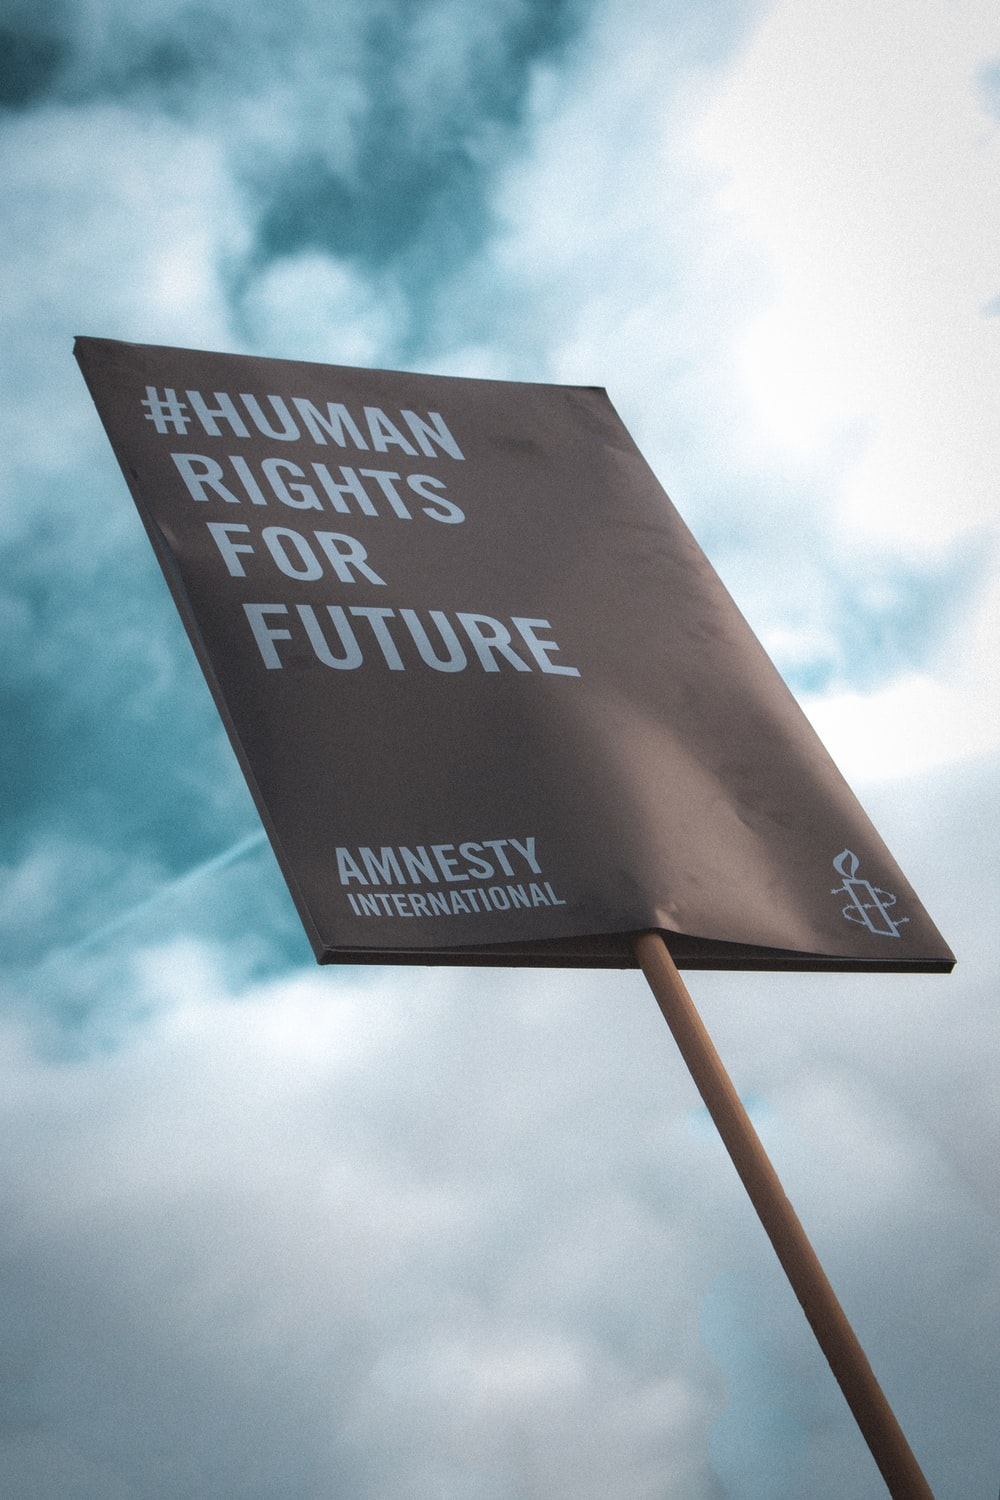 Human Rights For Future signage